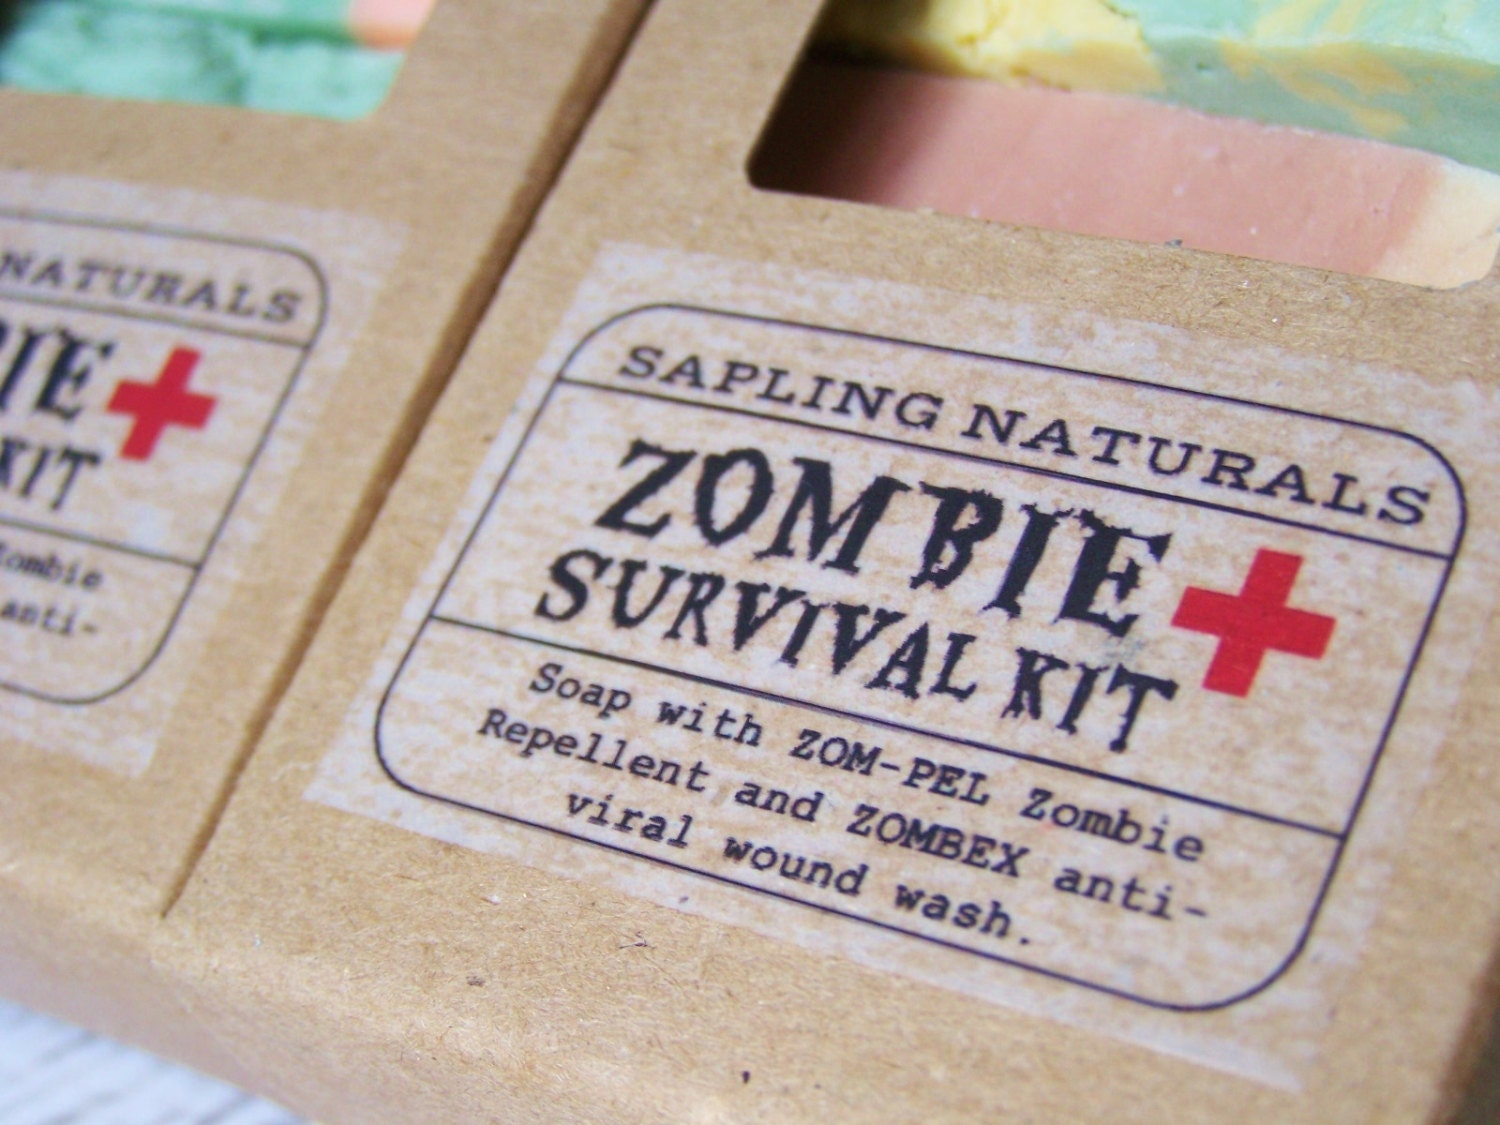 Zombie Survival Kit - travel size - great gift for men, nerds, survivalists - saplingnaturals